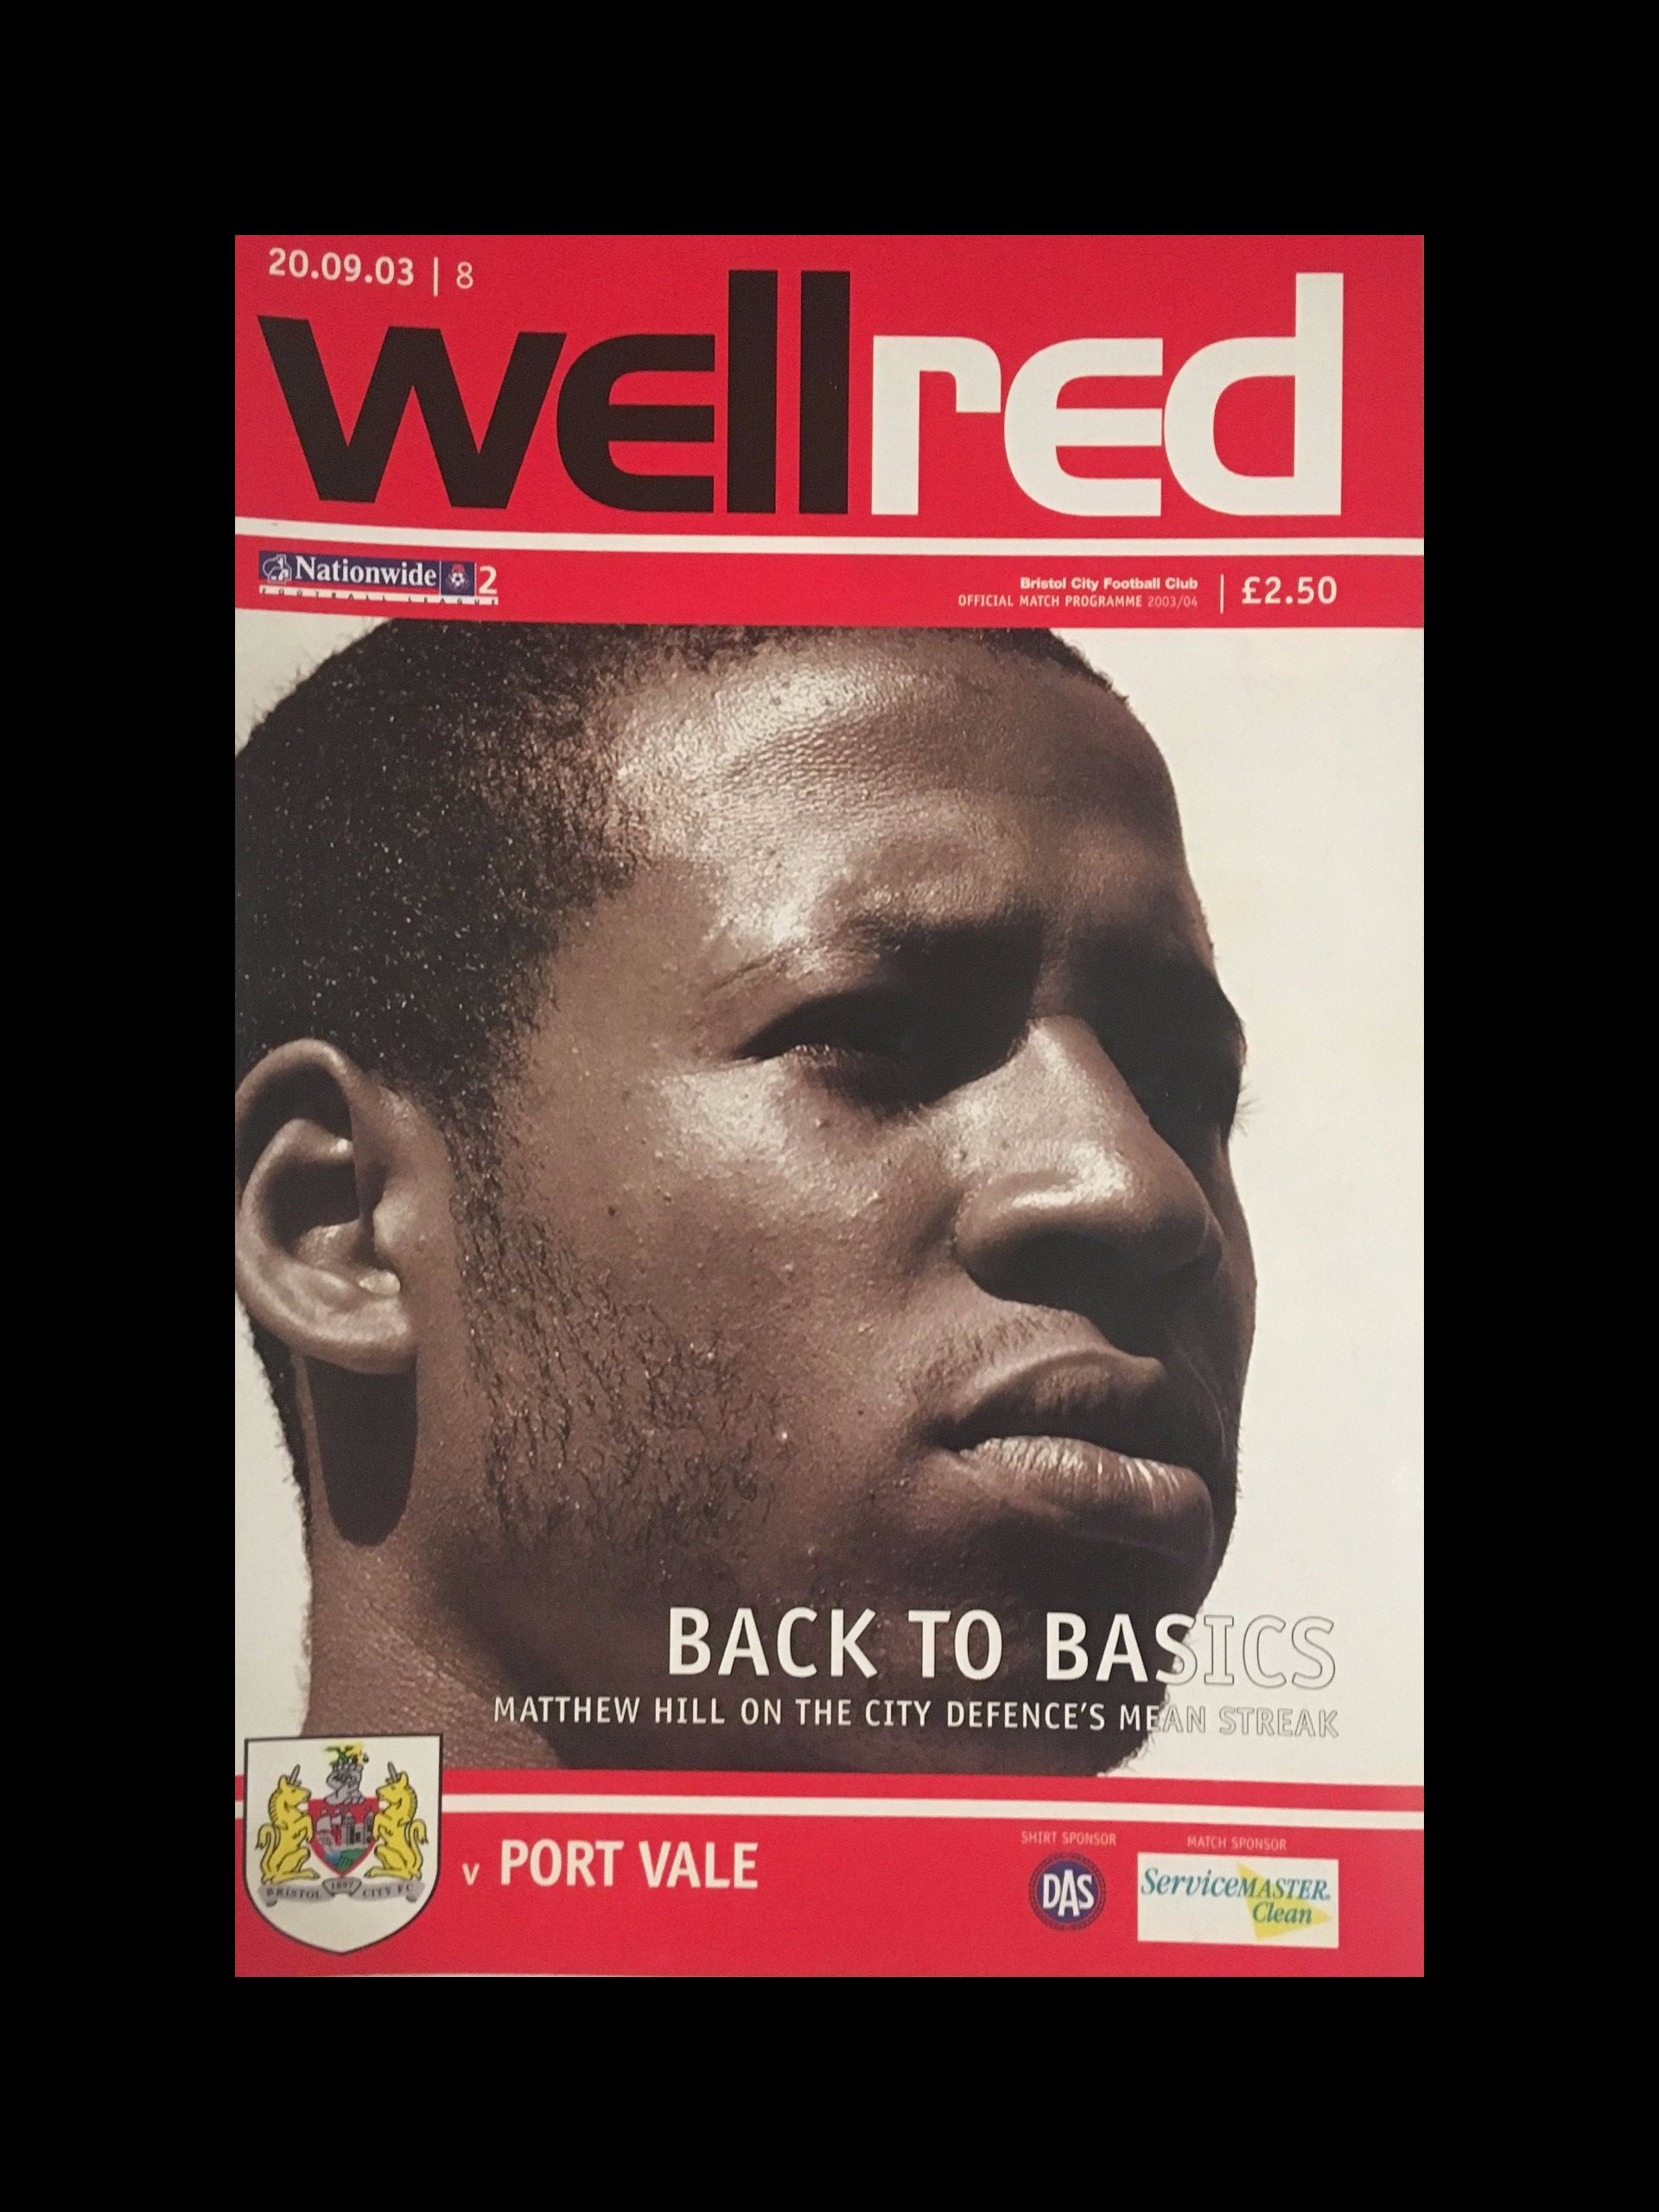 Bristol City v Port Vale 20-09-2003 Programme